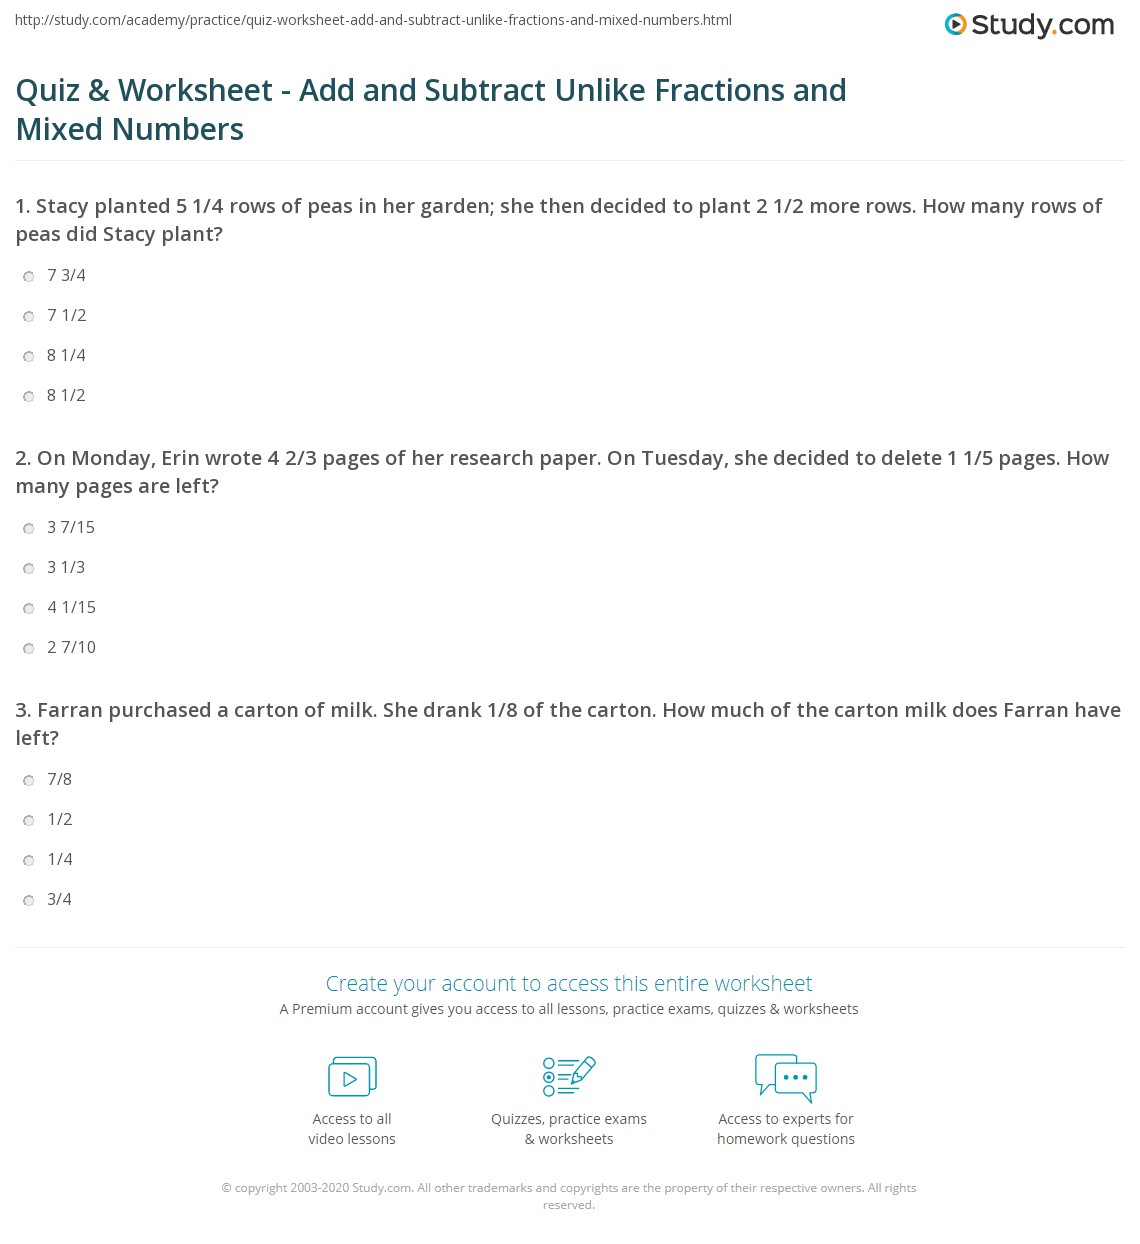 Quiz Worksheet Add and Subtract Unlike Fractions and Mixed – Adding and Subtracting Mixed Fractions Worksheet